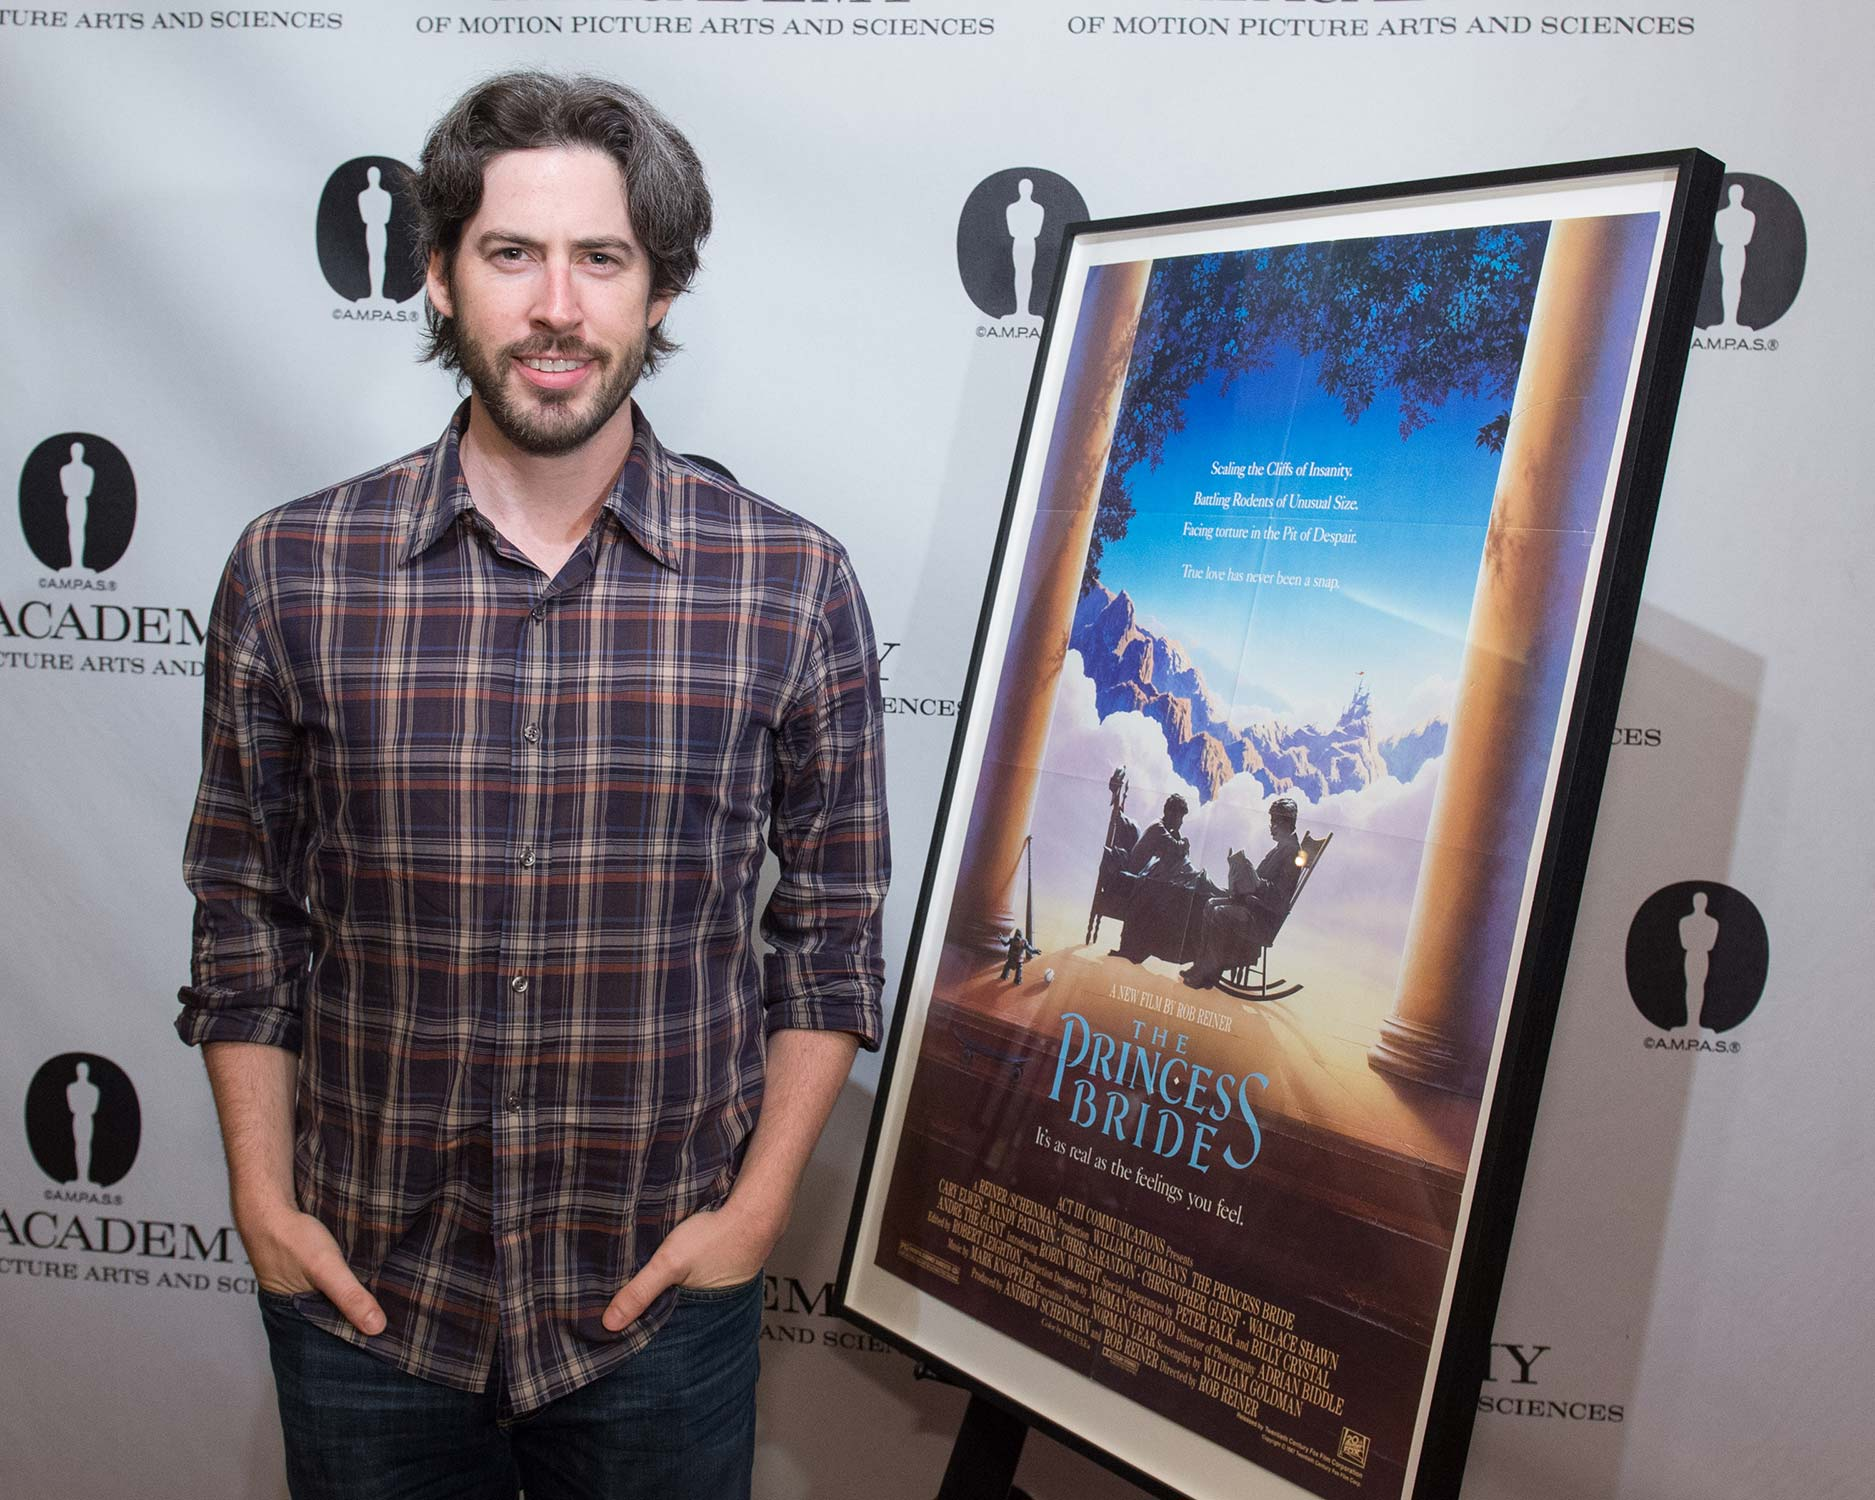 Oscar®-nominated writer/director Jason Reitman